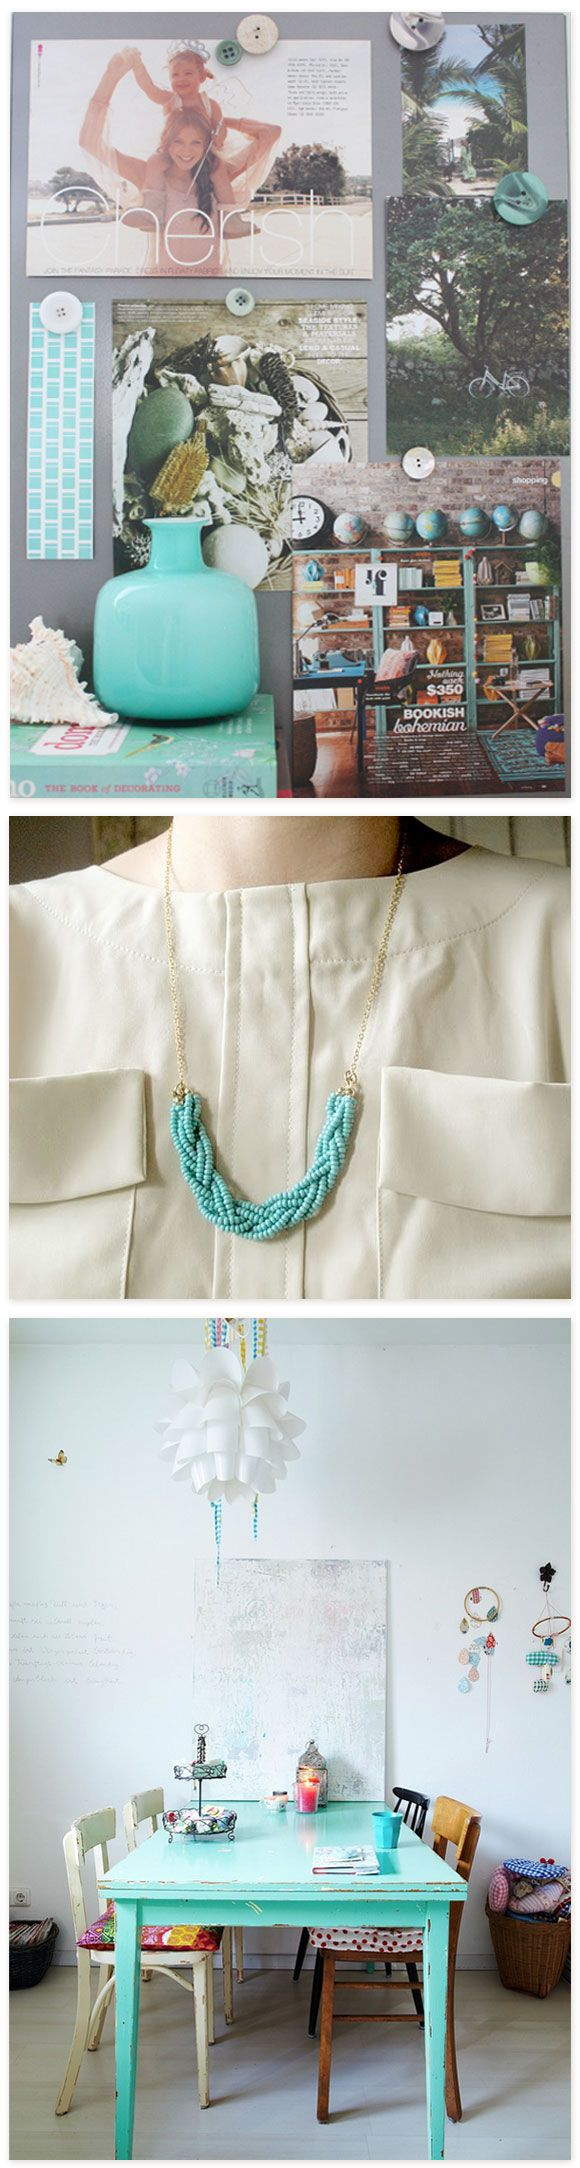 DIY Braided Bead Necklace by ECAB (via Nicole) | I want to make a stockpile of these in every color imaginable for Summertime wearing!